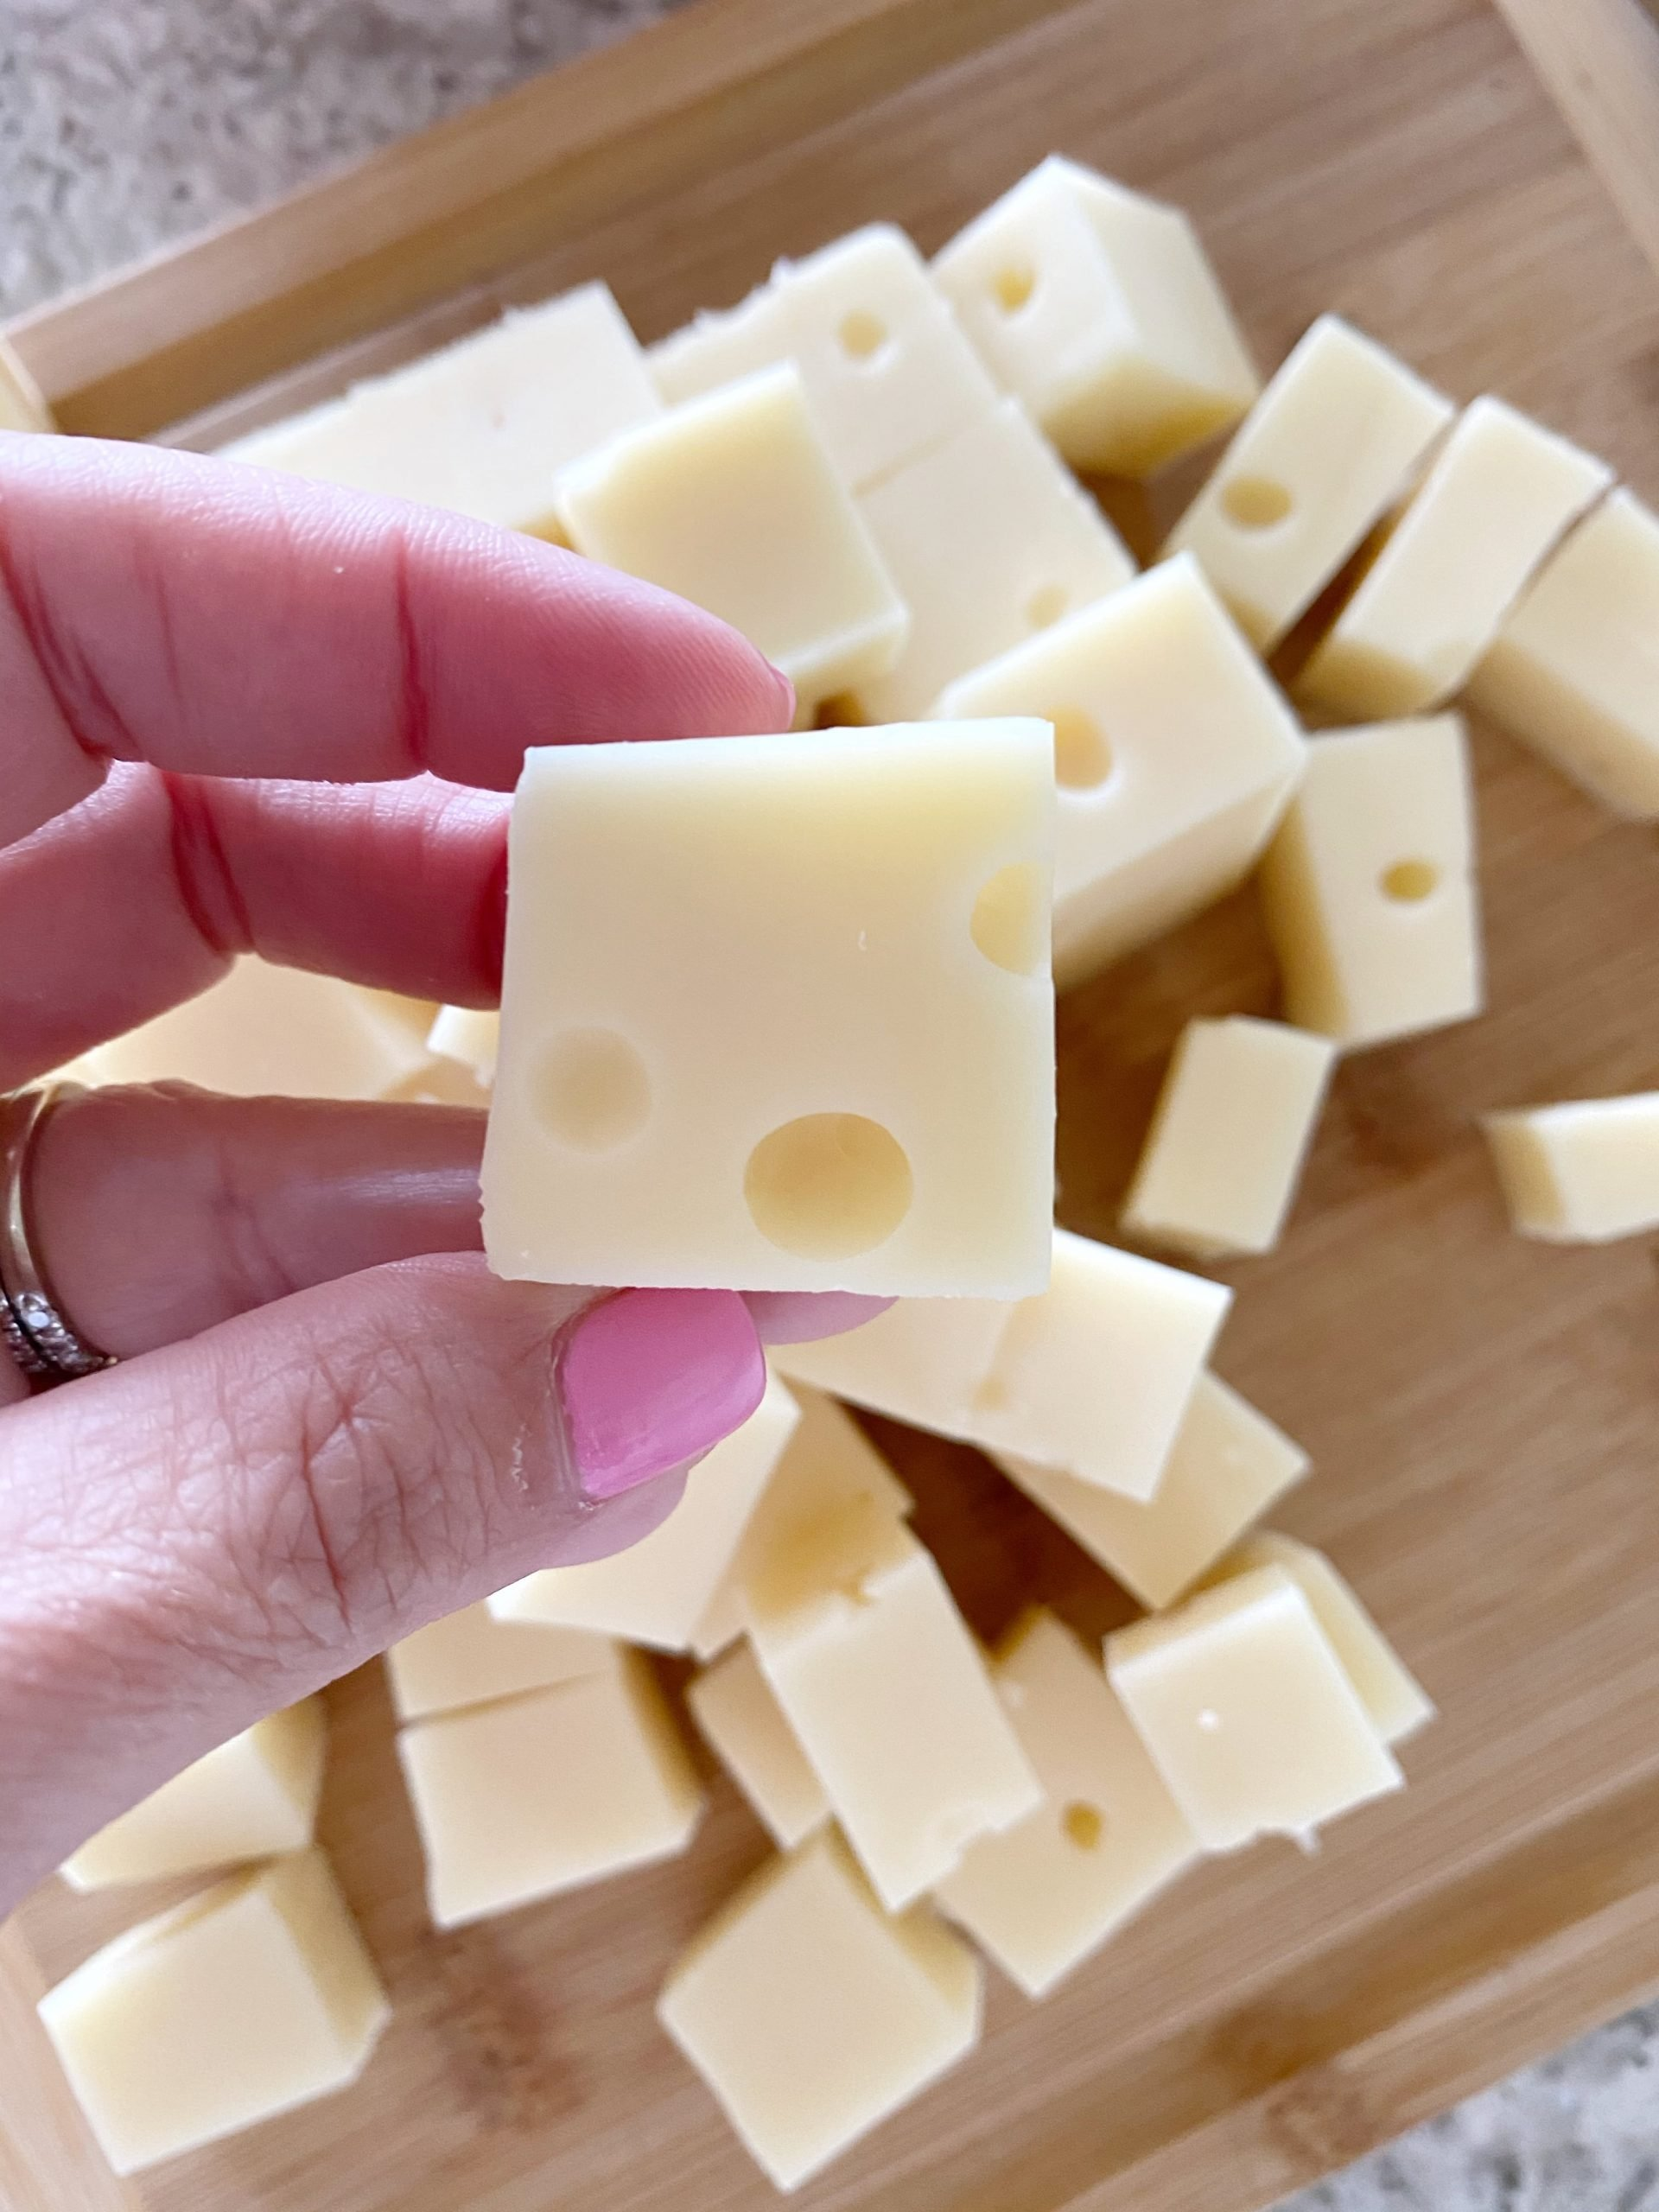 swiss cheese cubed